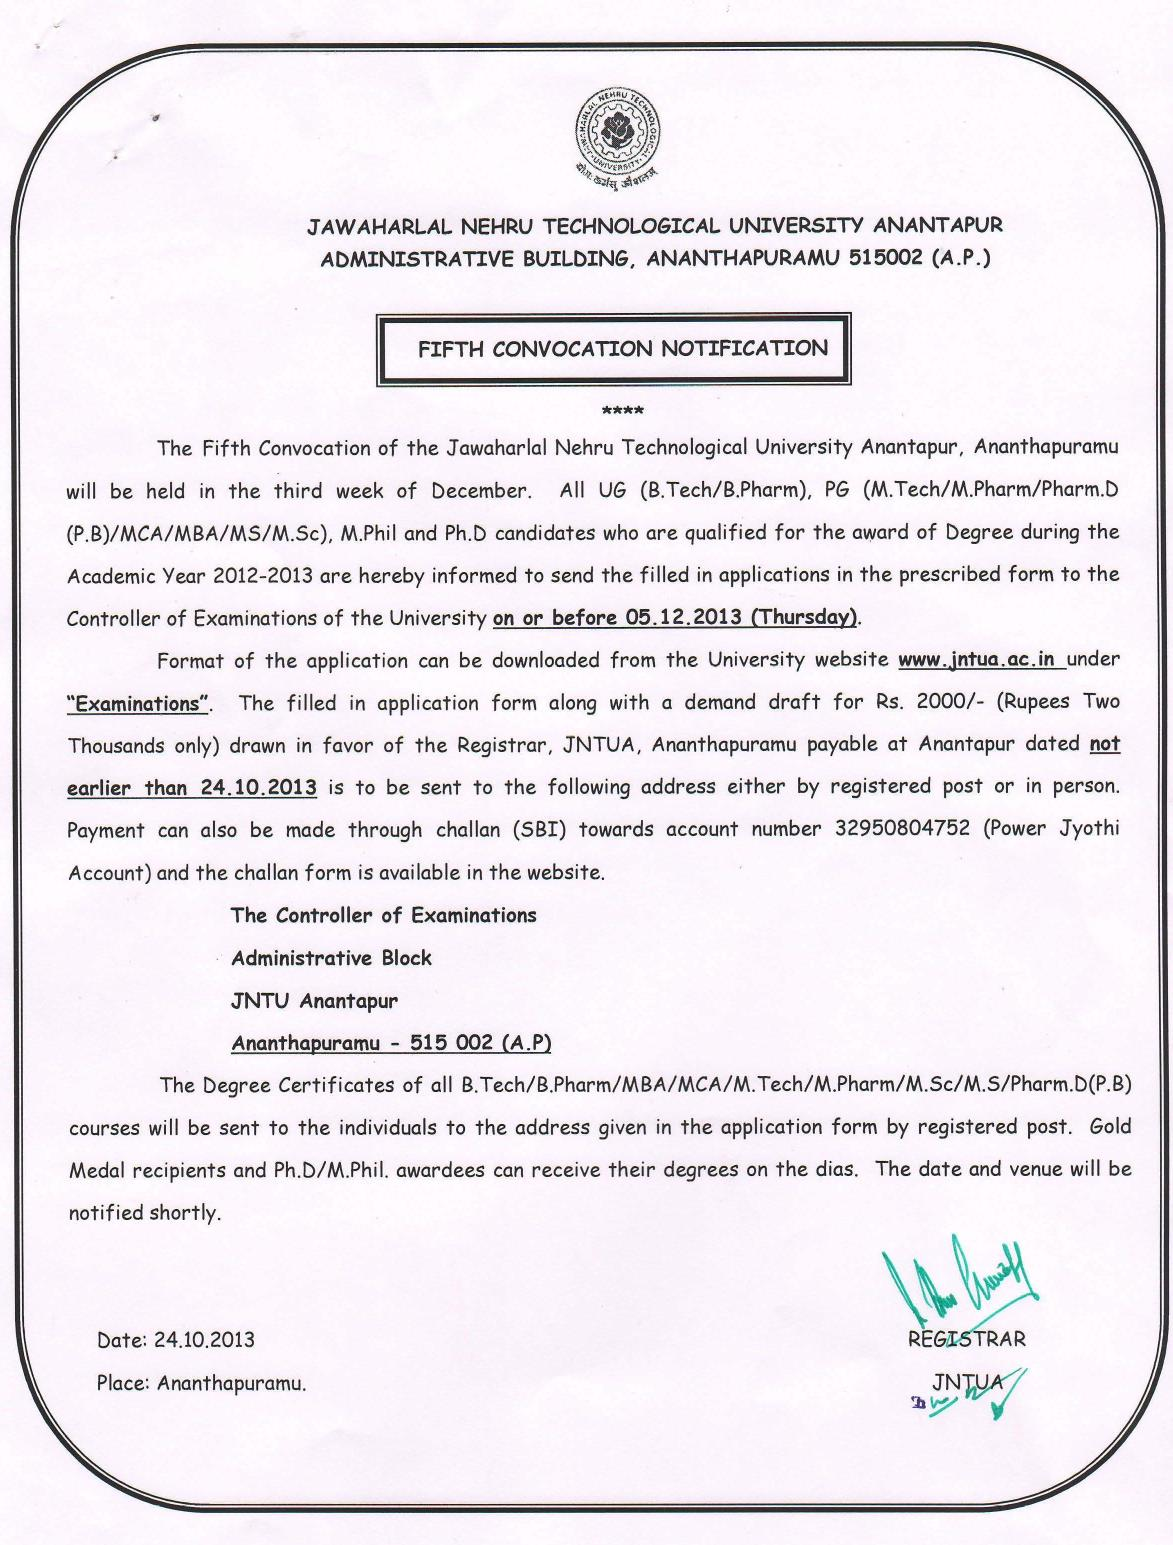 Superior As You Are Looking For The Notification Of Convocation Certificate So We  Are Provide You The Notification U0027